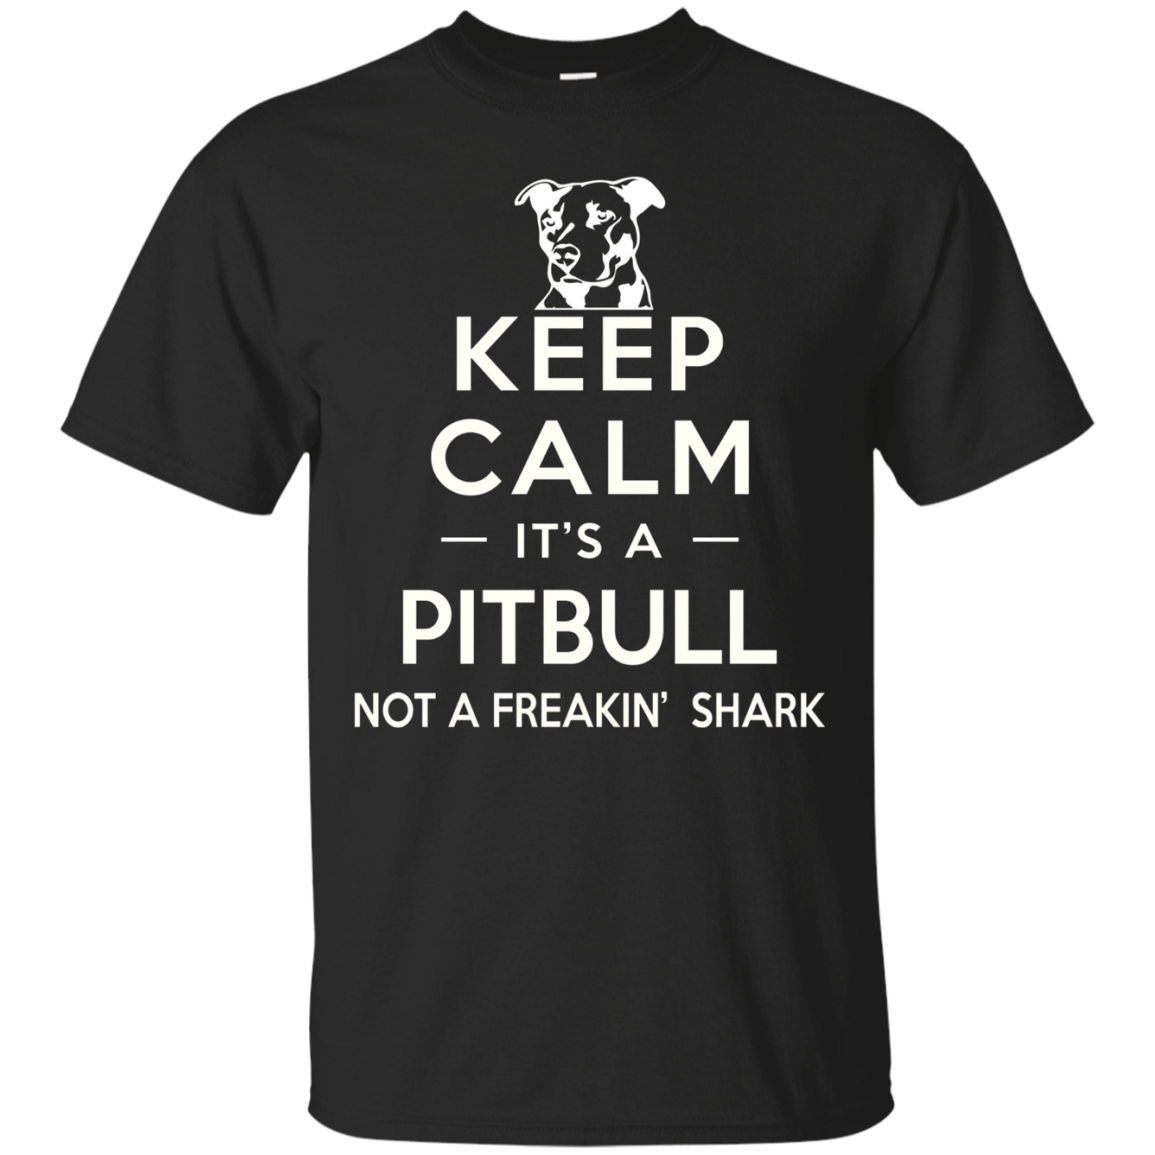 Keep Calm It's A Pitbull T-Shirt